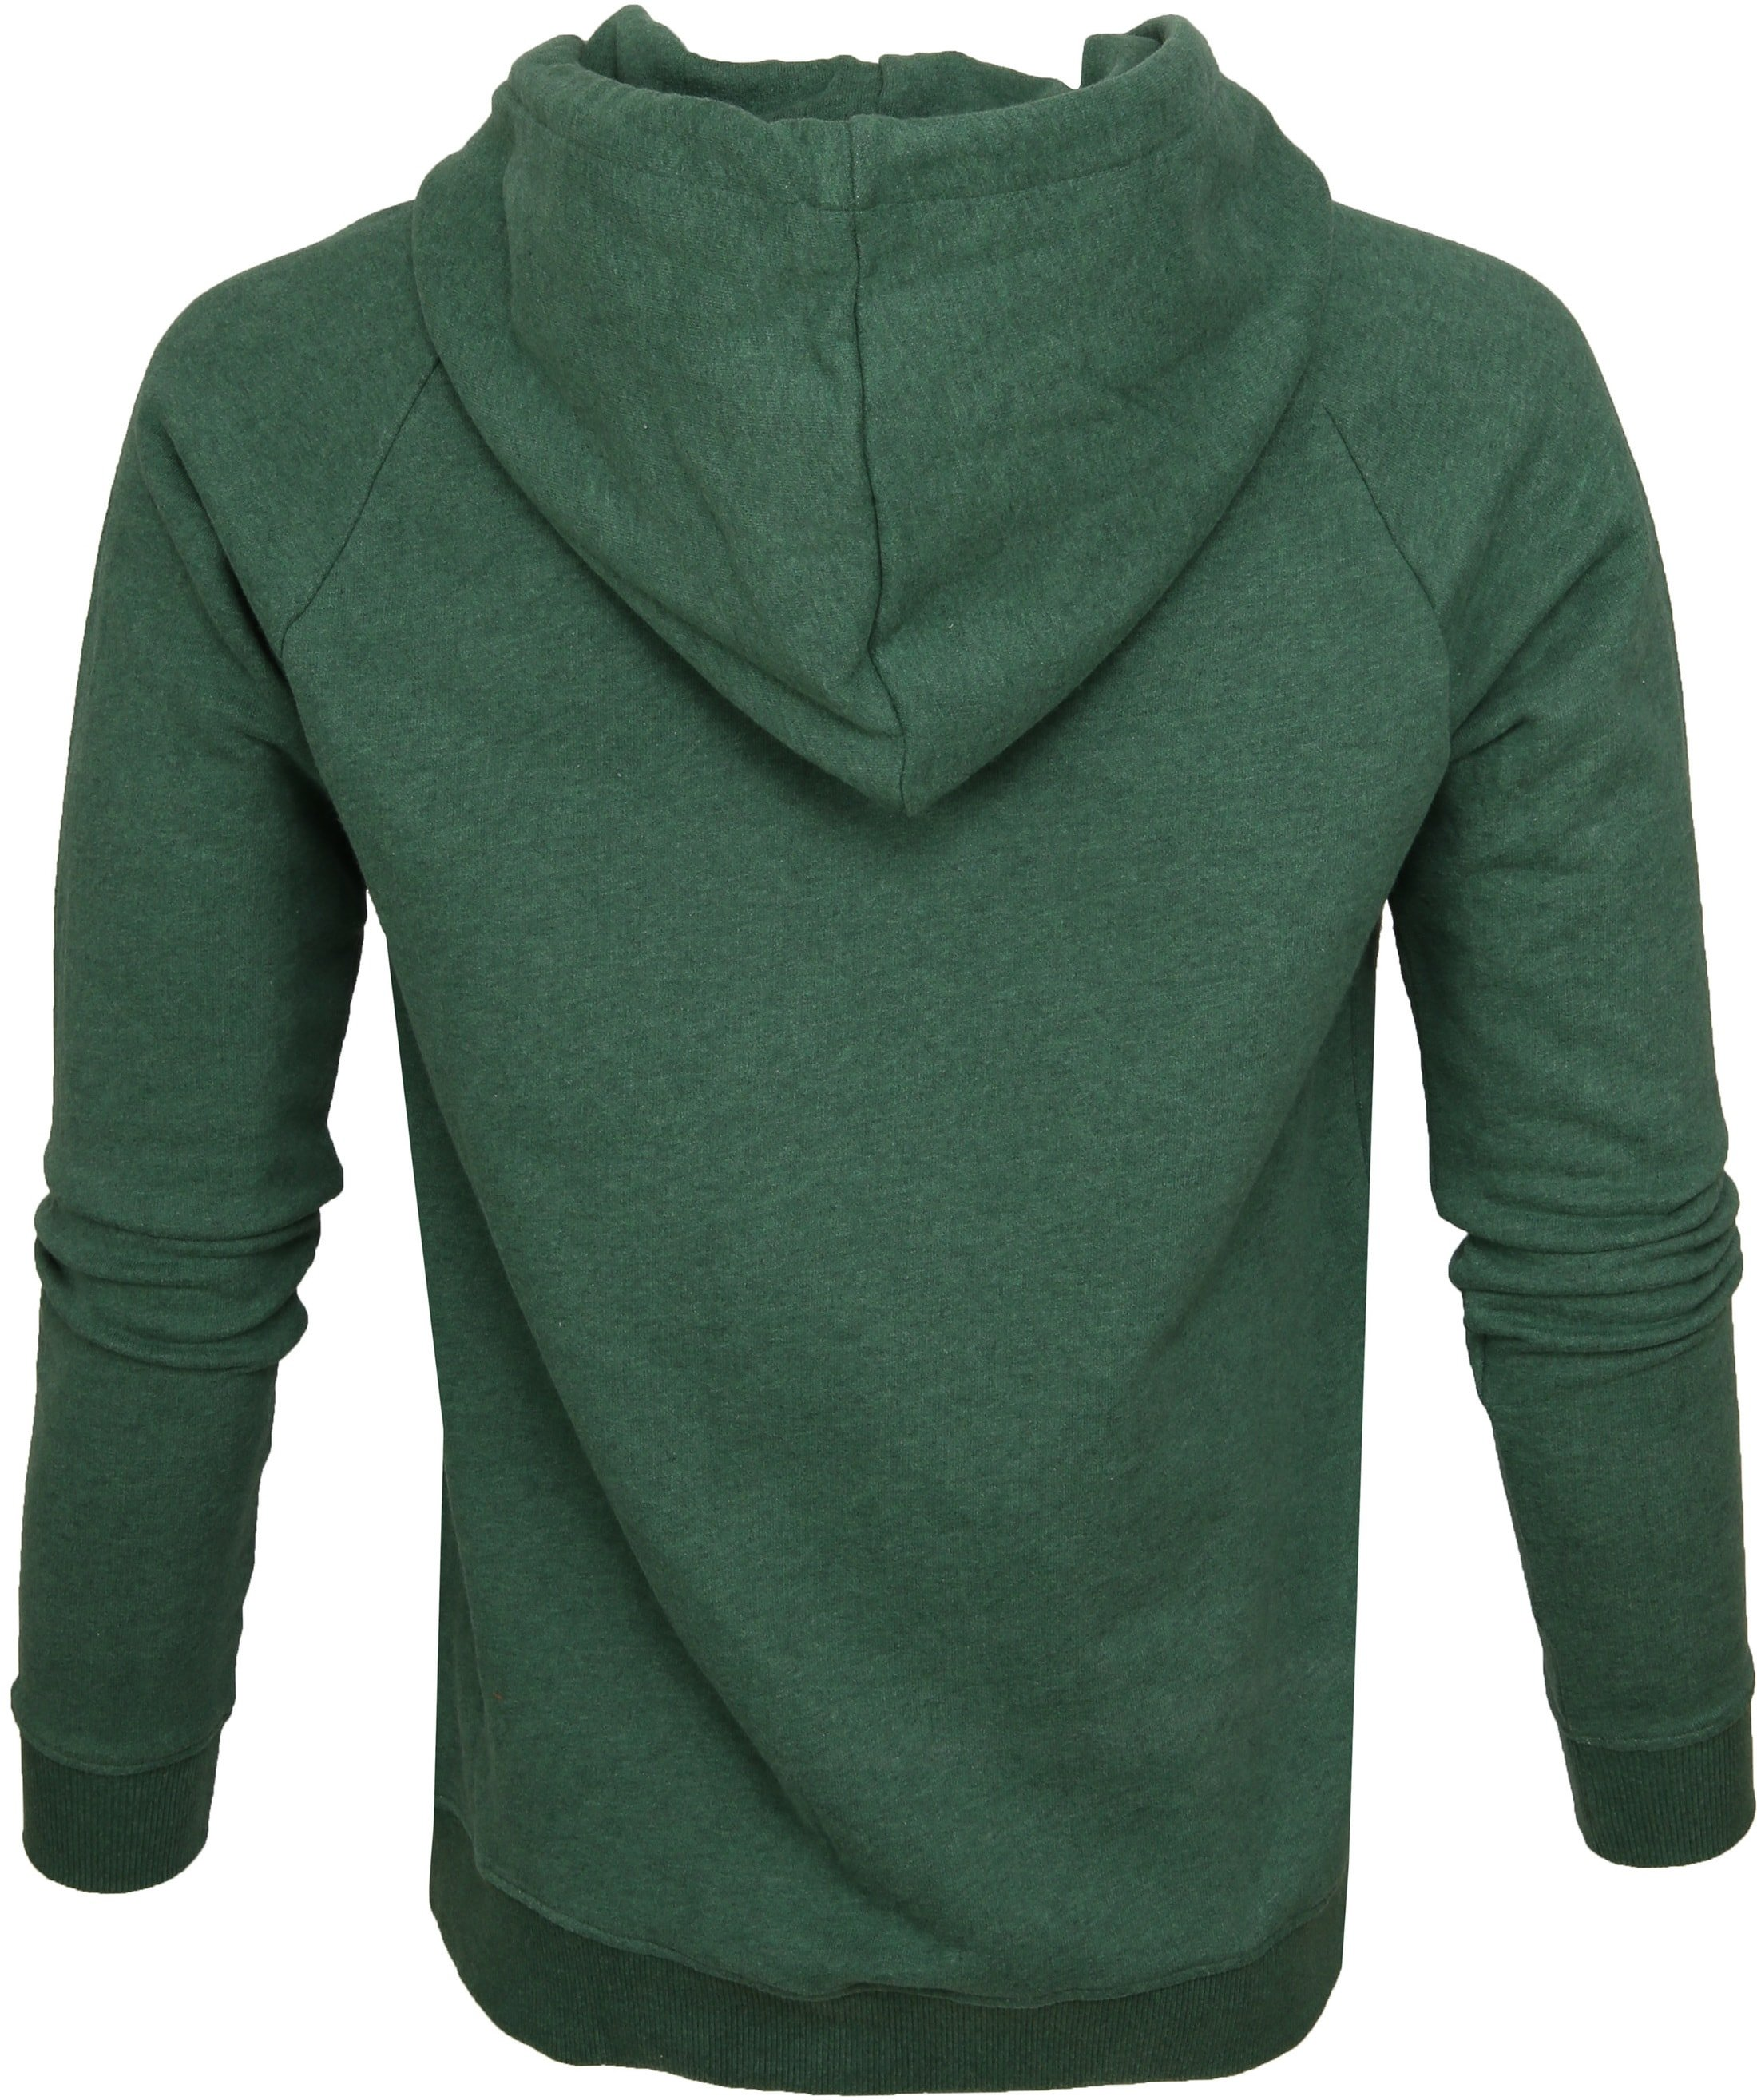 KnowledgeCotton Apparel Hoodie Green foto 3